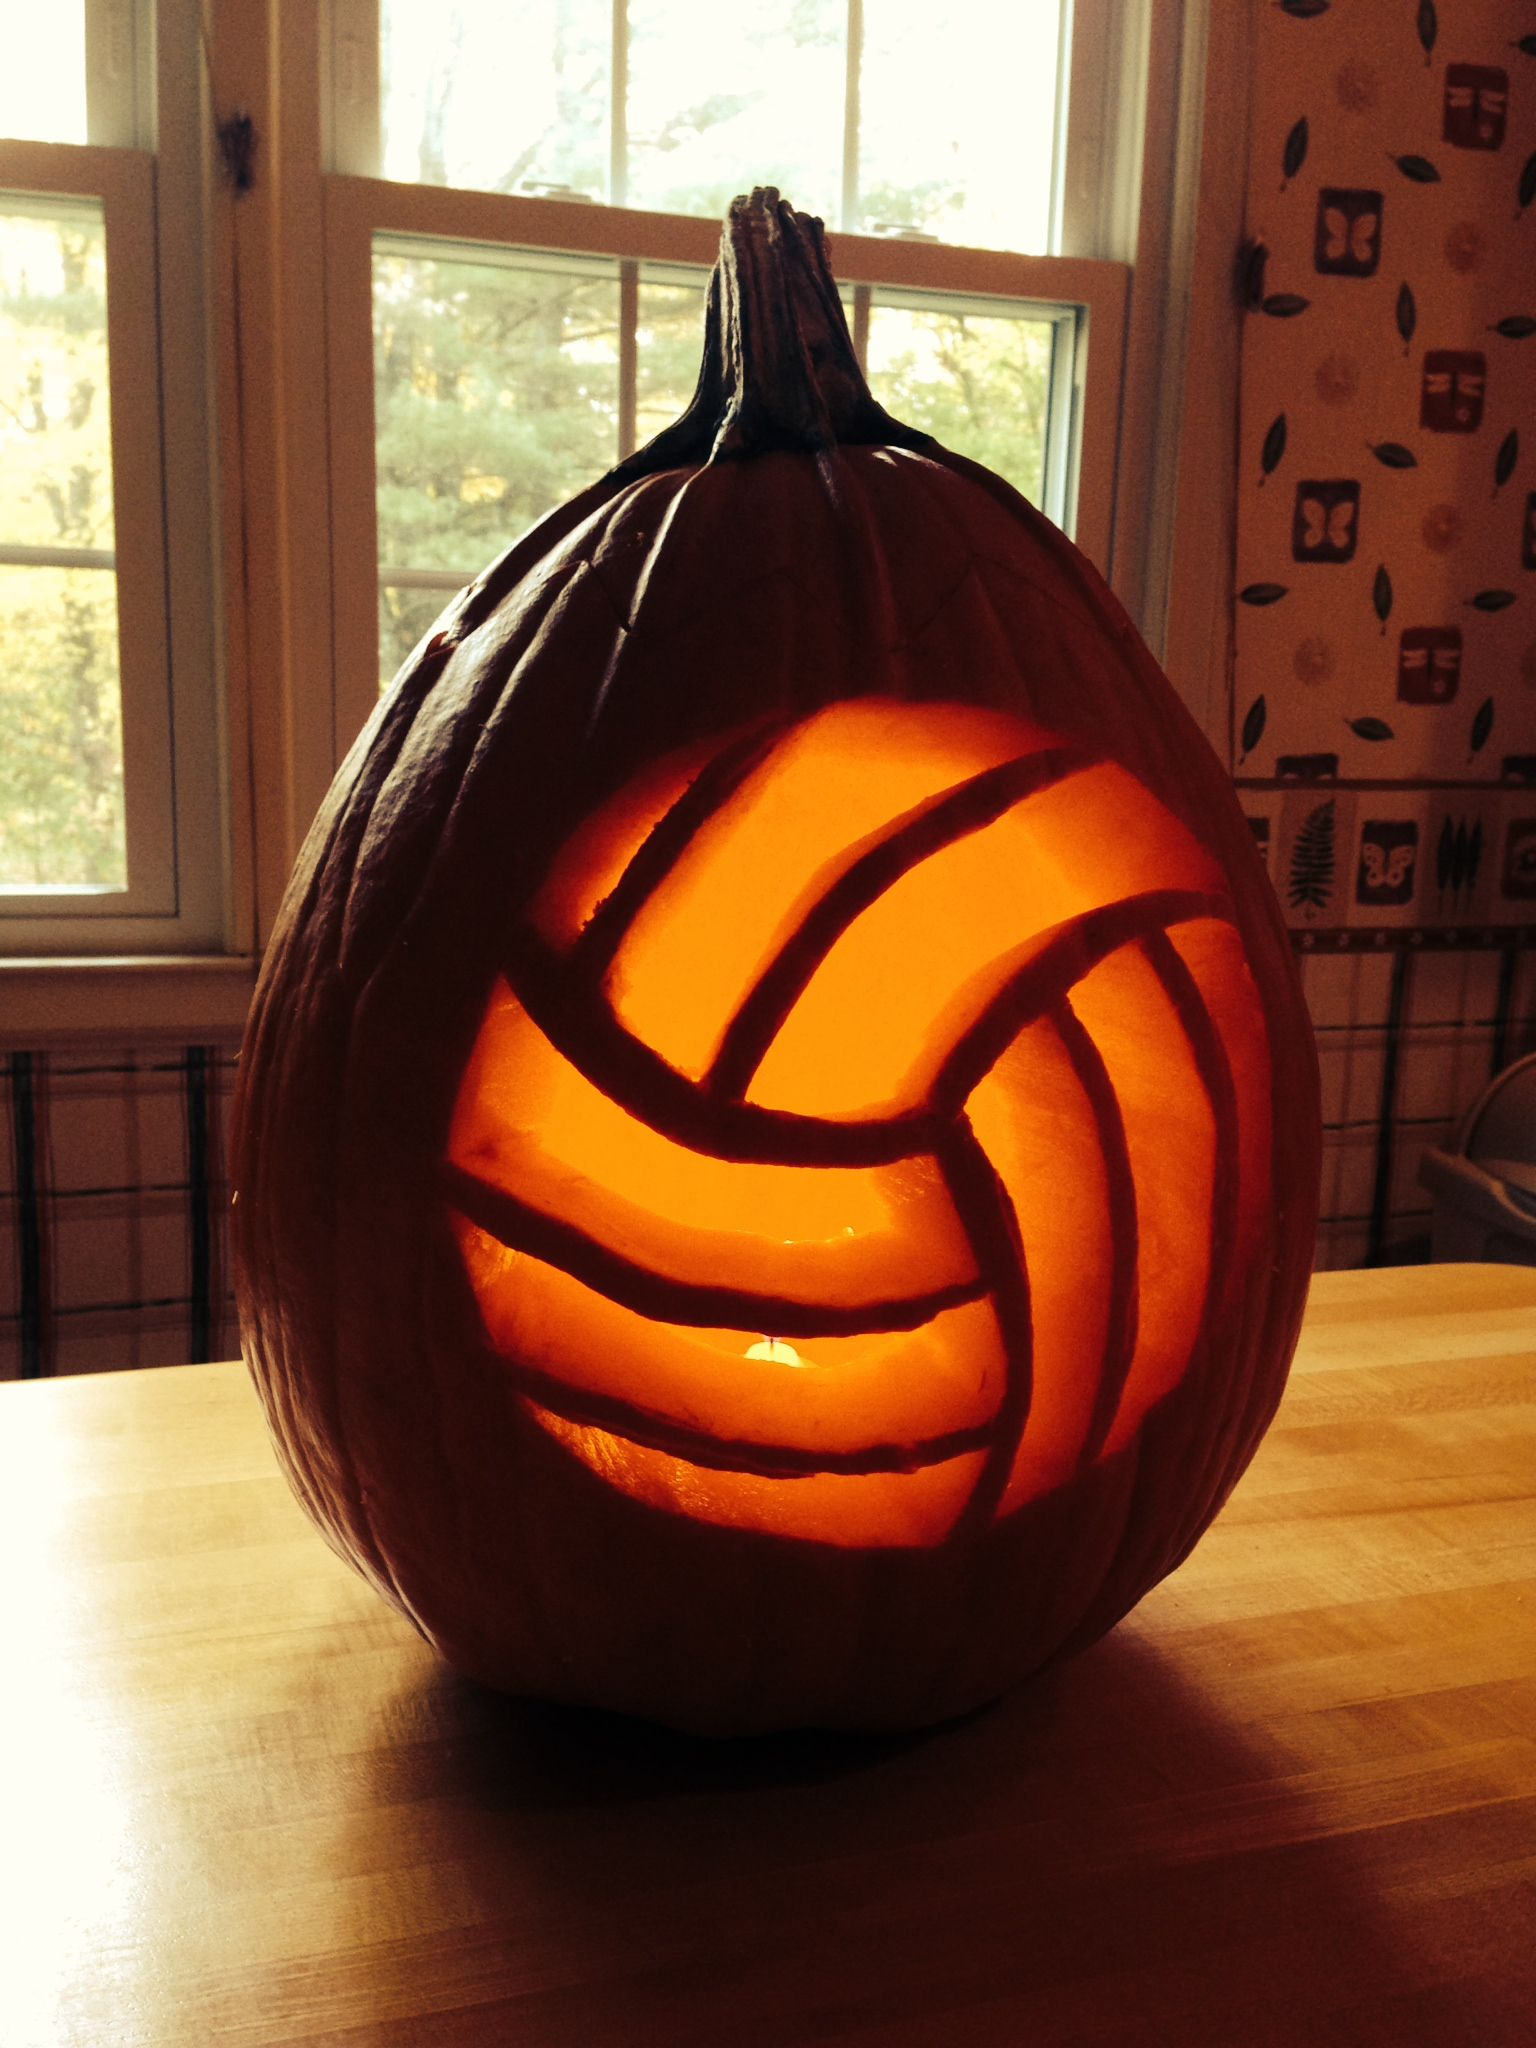 Well look at that! A volleyball pumpkin! Awesome! | justehjthings ...